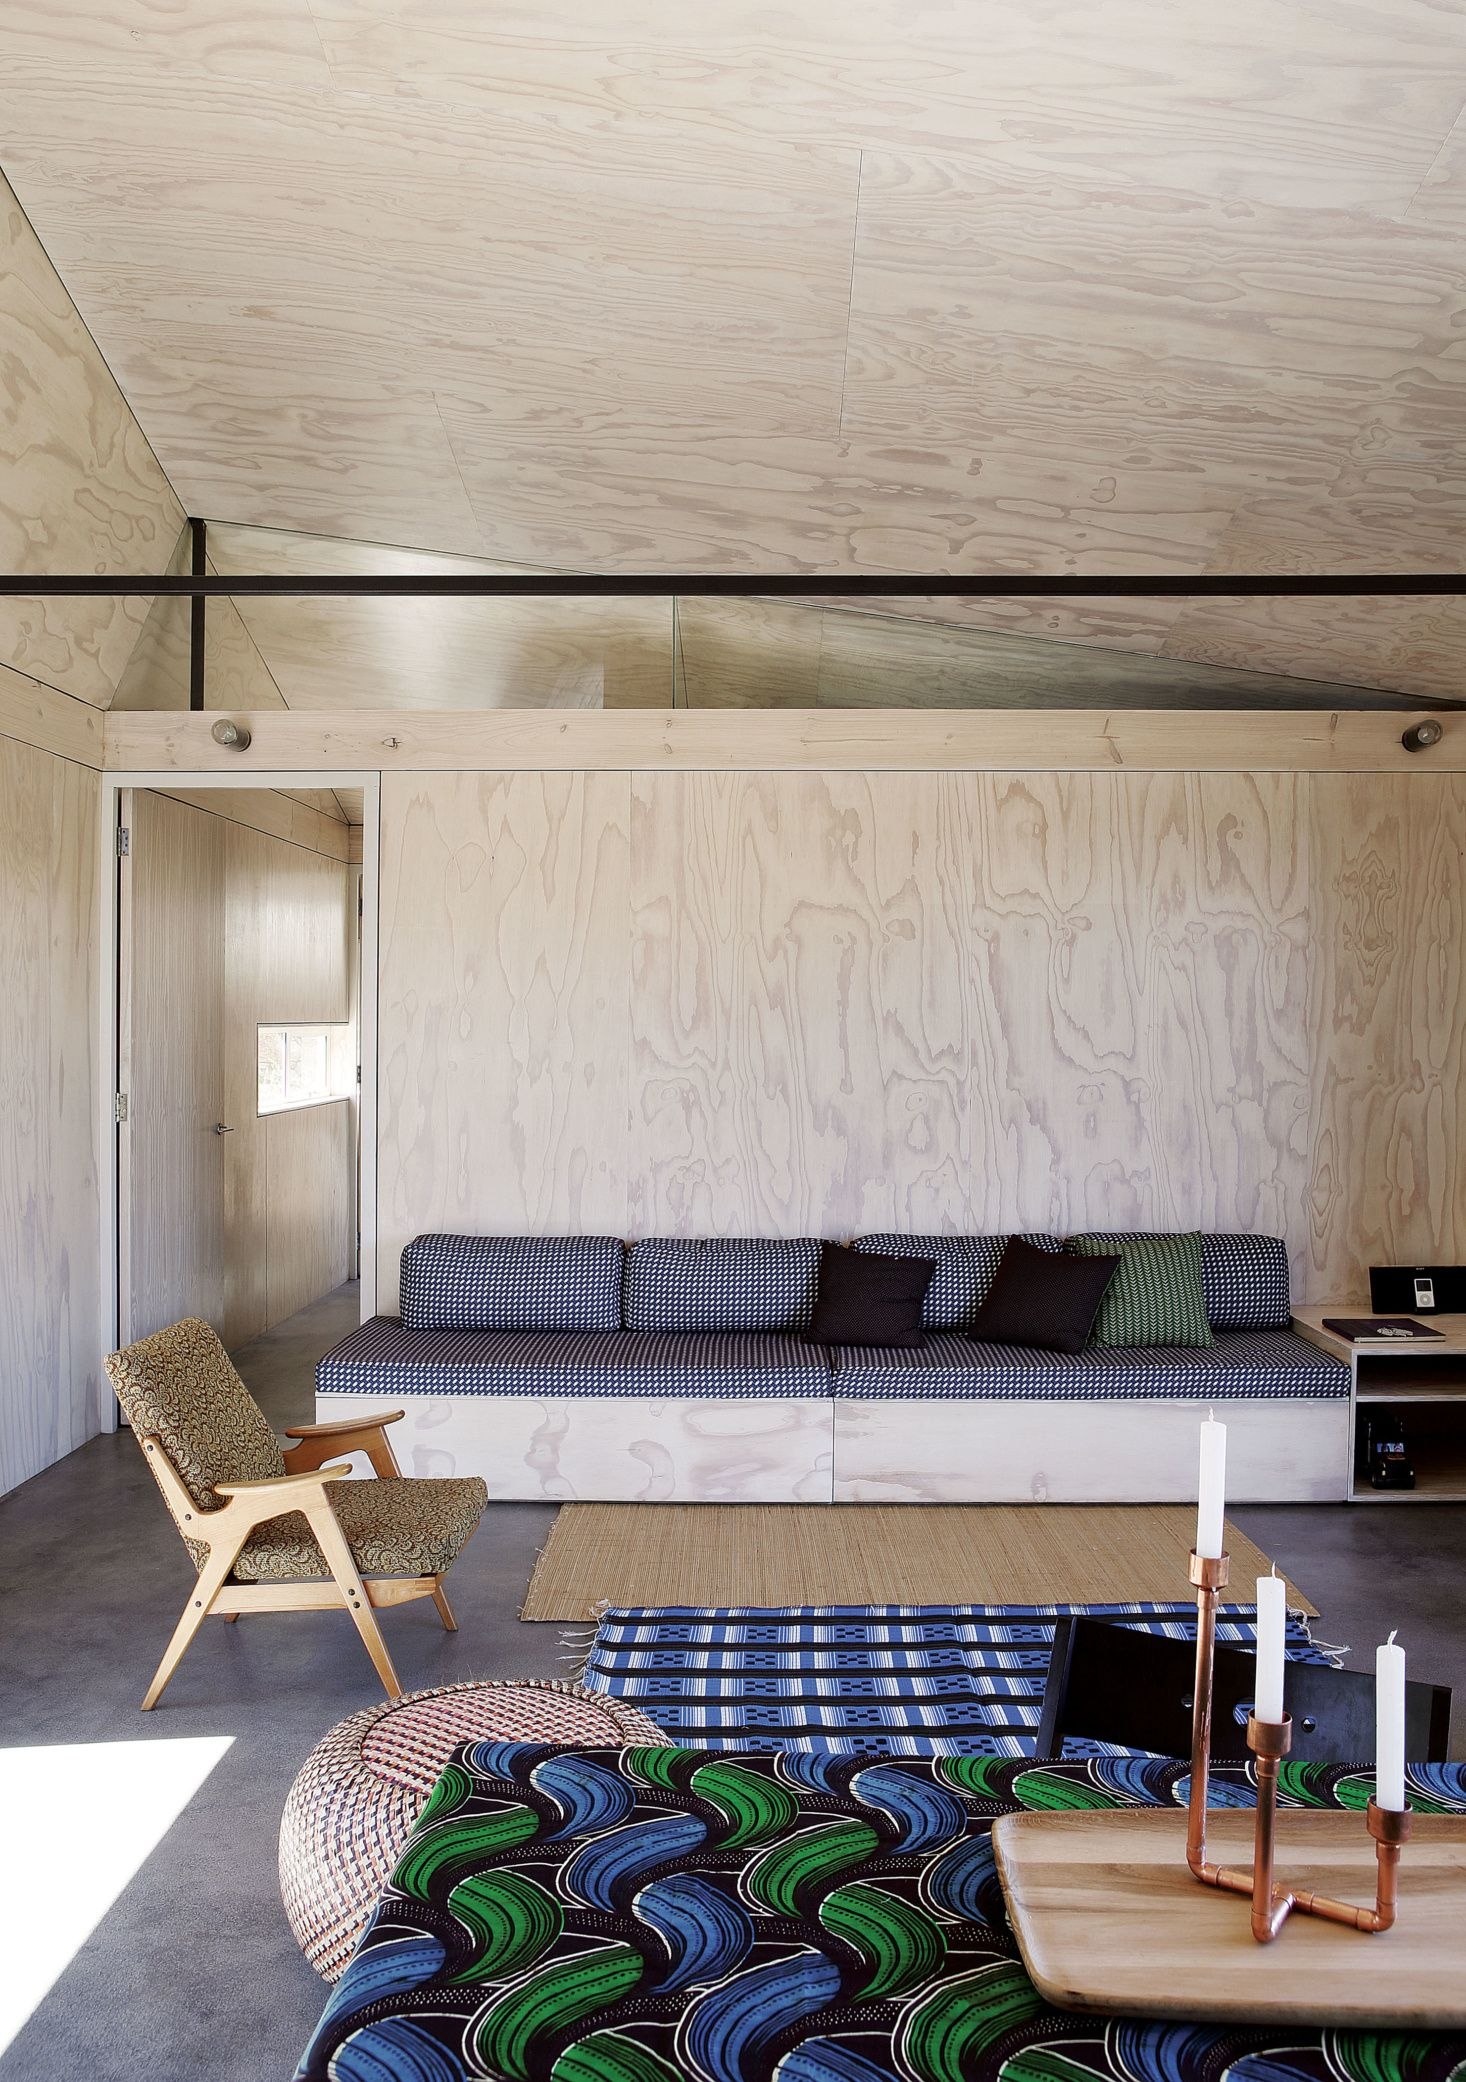 A built in plywood bench upholstered with a checked fabric anchors the living space